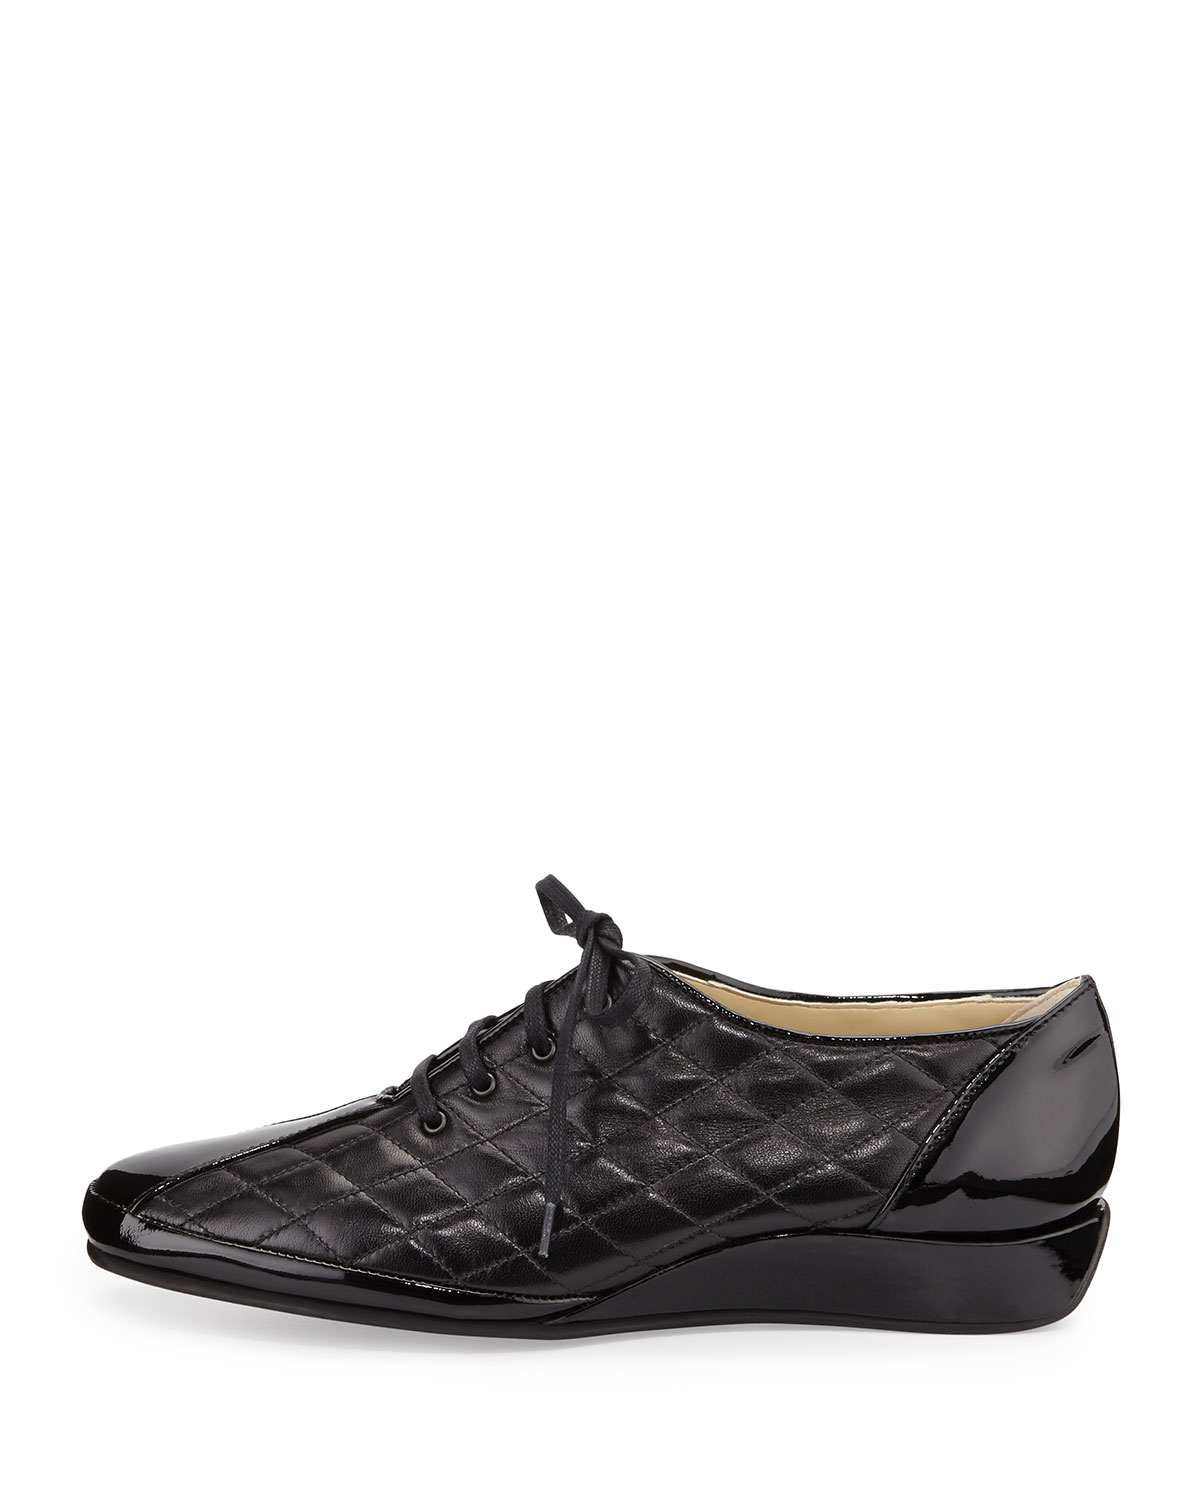 Amalfi by rangoni Esse Quilted Leather Sneaker in Black